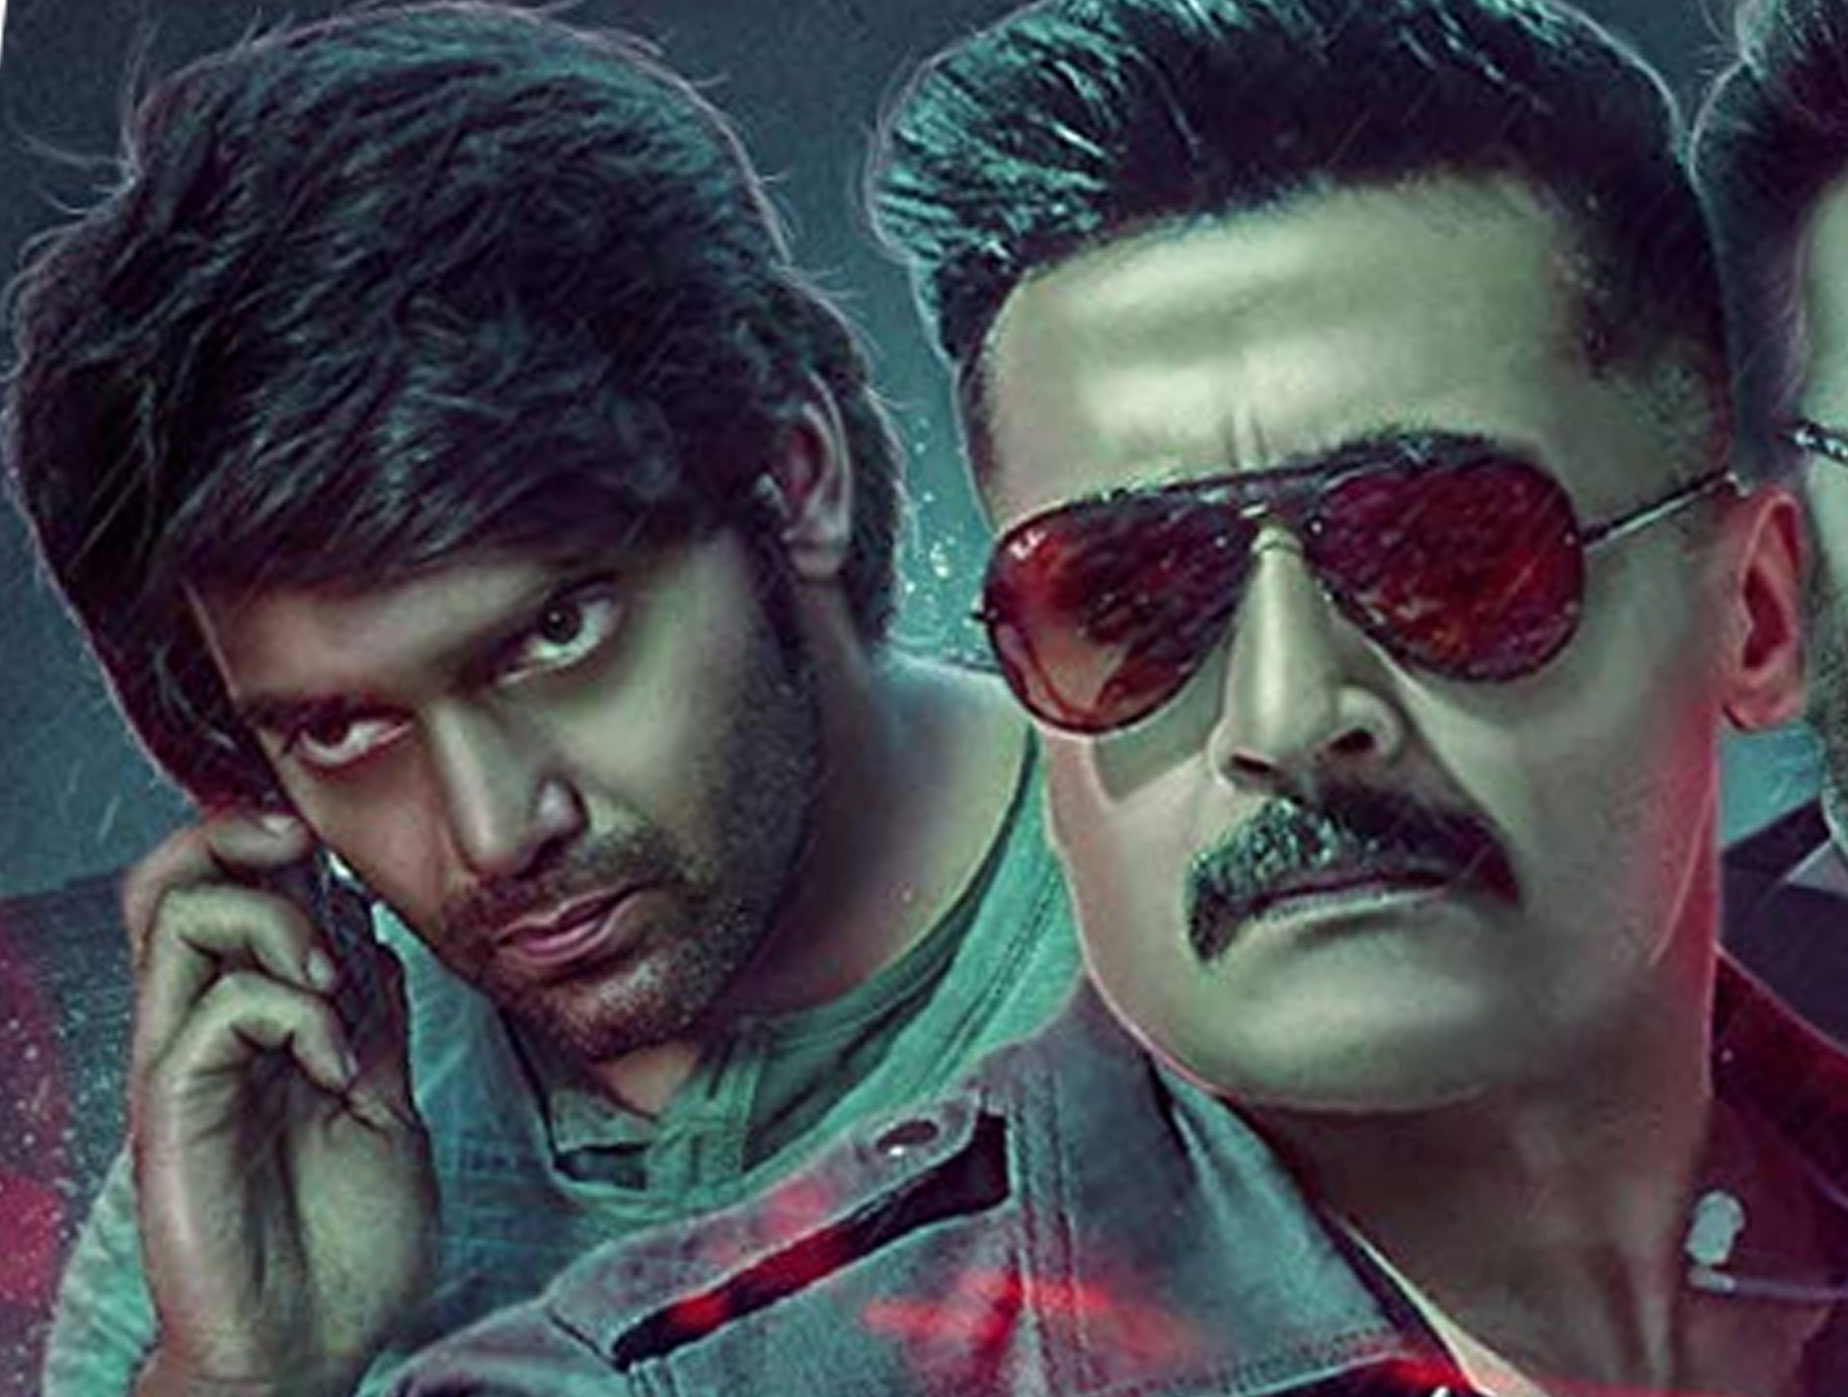 SPOILER ALERT: Suriya and Arya's characters in Kaappaan revealed